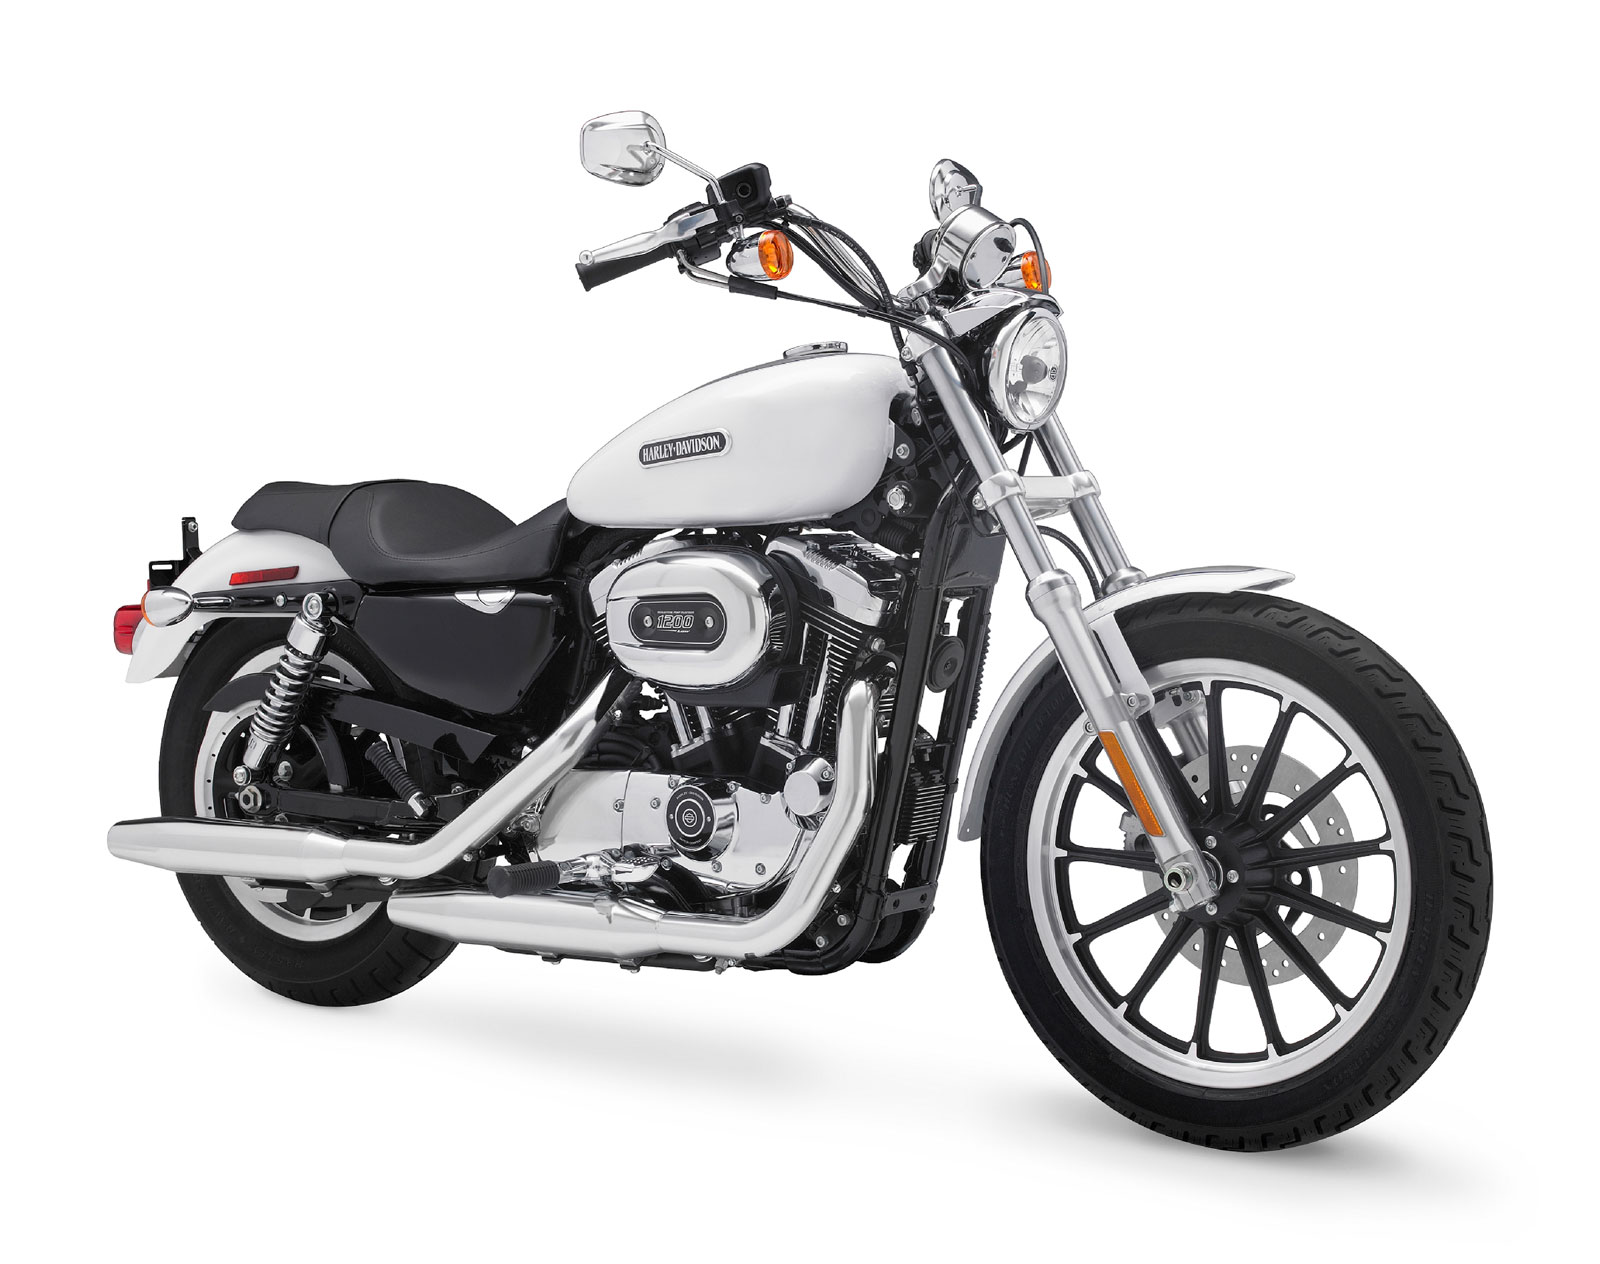 2009 harley davidson sportster 1200 low xl1200l. Black Bedroom Furniture Sets. Home Design Ideas